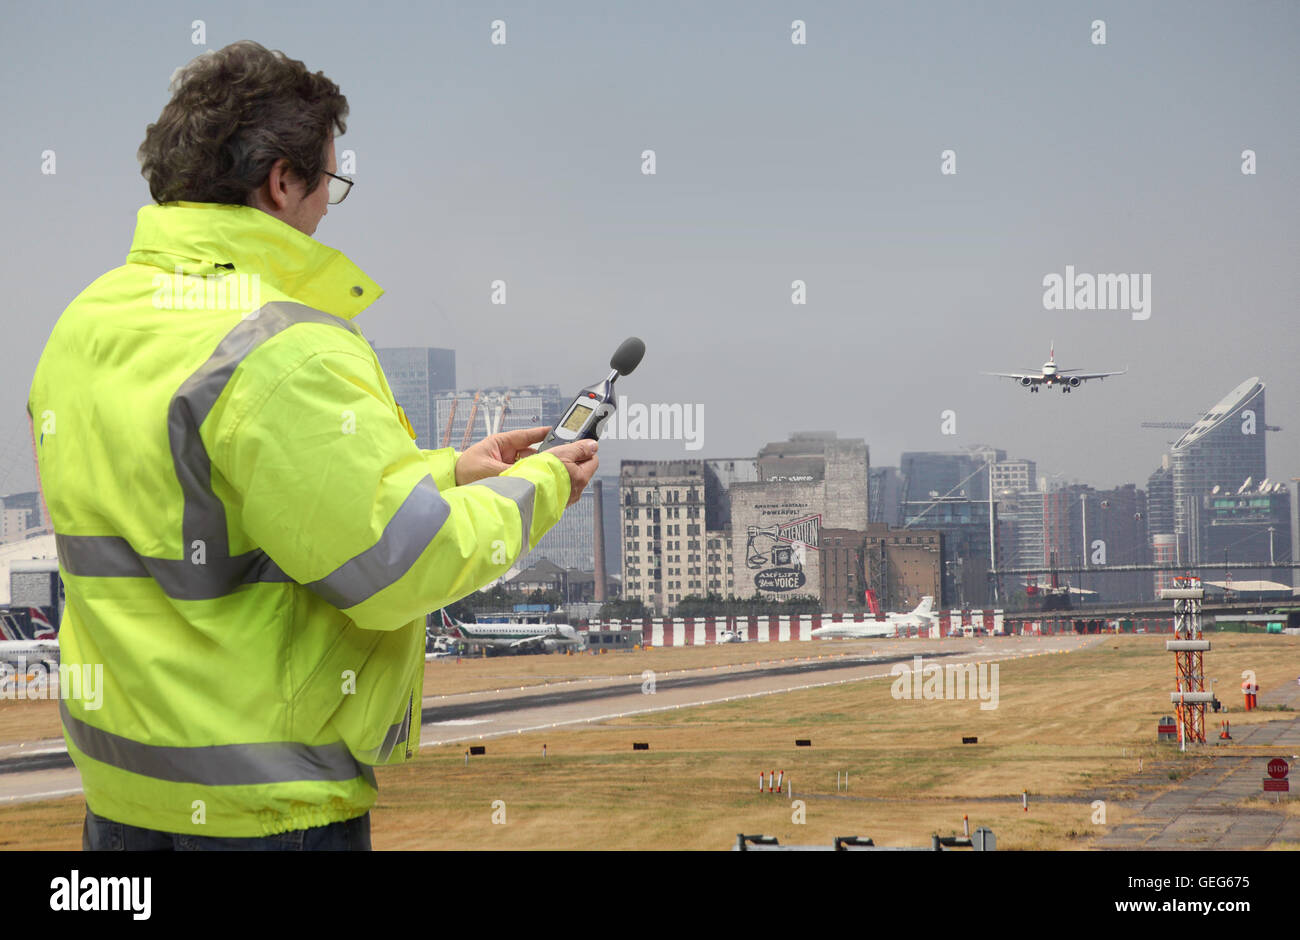 Un ingegnere ambientale controlla i livelli di rumore all'aeroporto di London City come piano terre. canary Immagini Stock